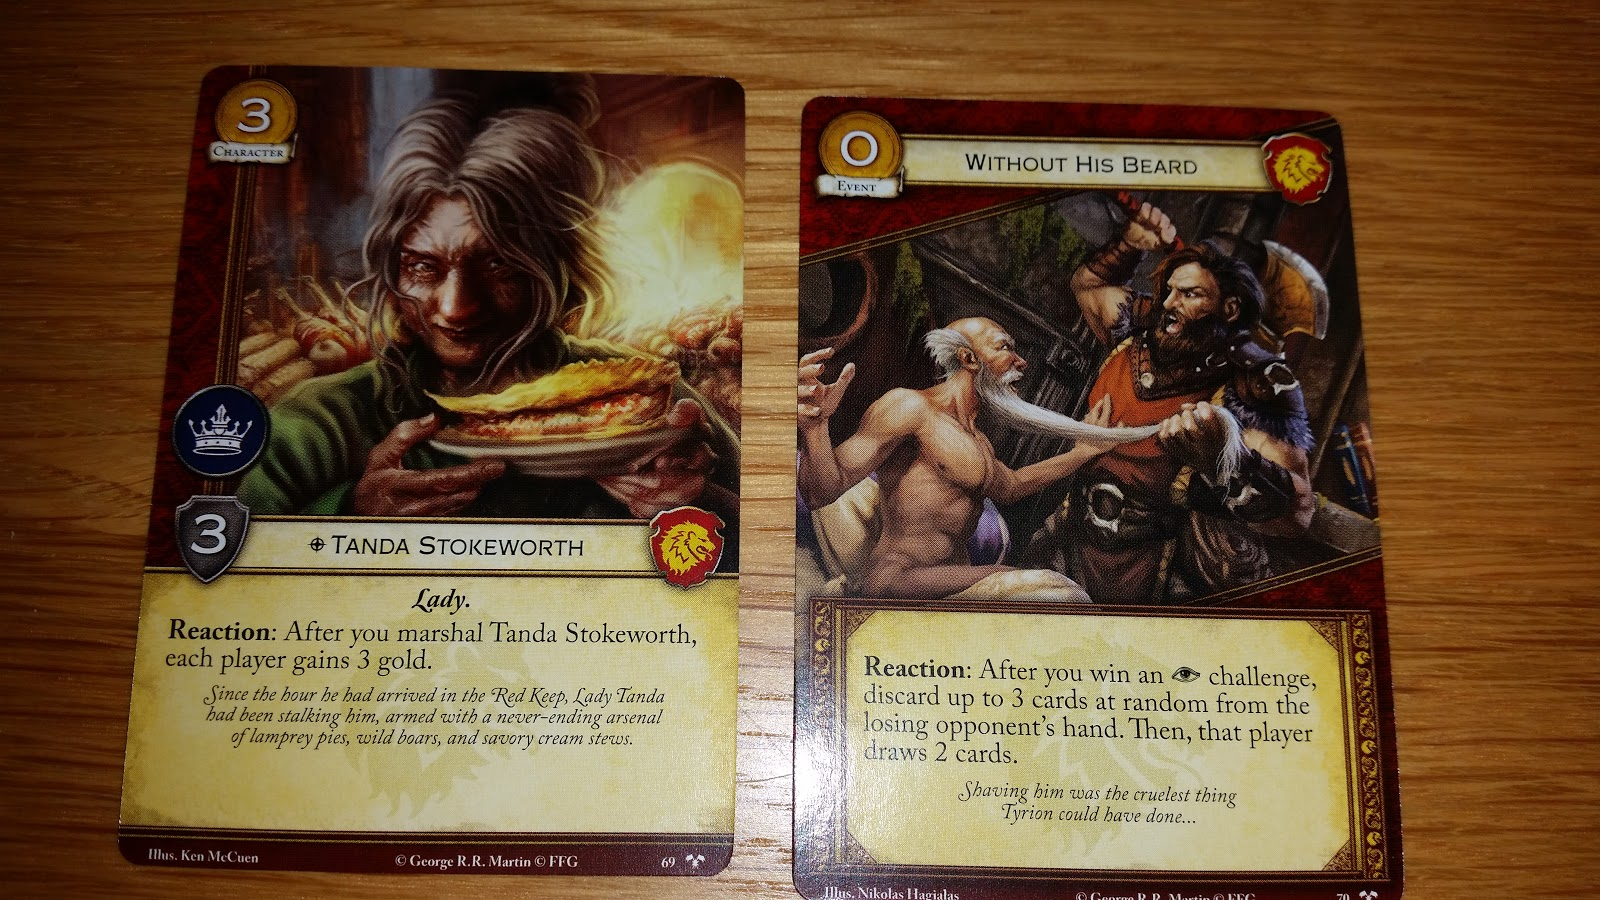 Stokeworth A 3 Cost Strength Character That After She Is Marshalled Lets You And Each Played Gain Gold With Lannisters Always Good